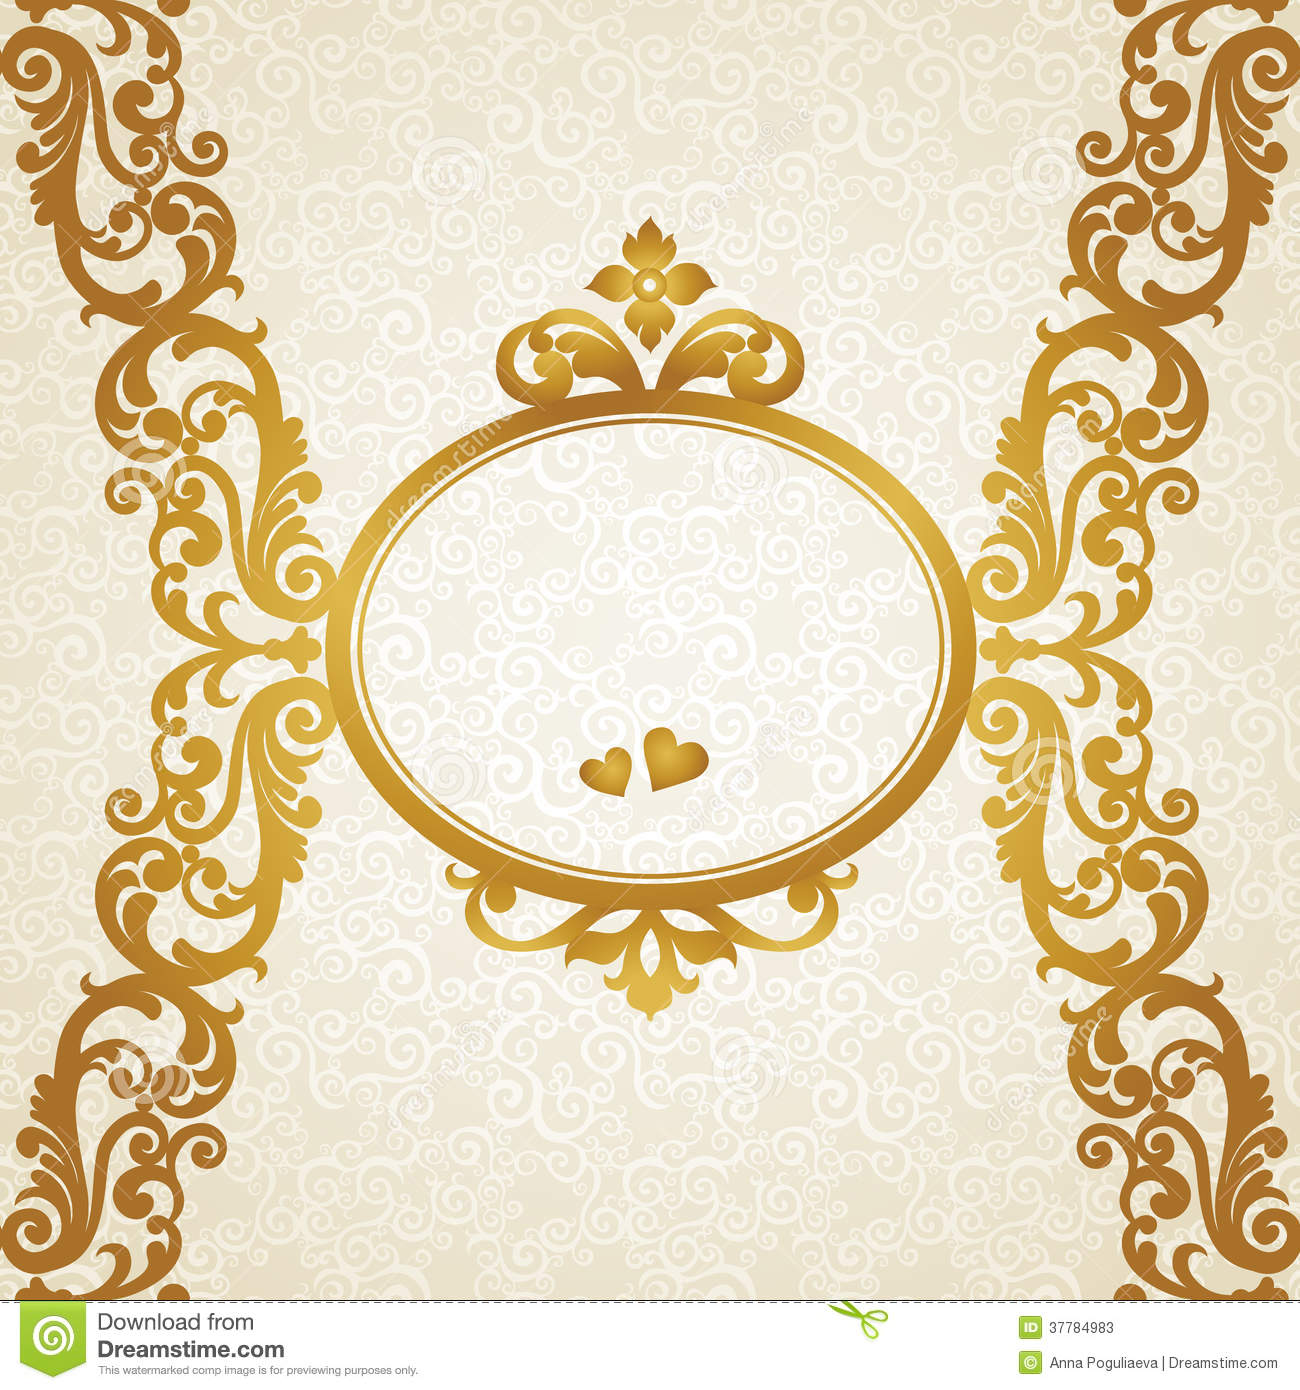 Frame design for wedding invitation vector border in victorian style - Vector Baroque Endless Border In Victorian Style Stock